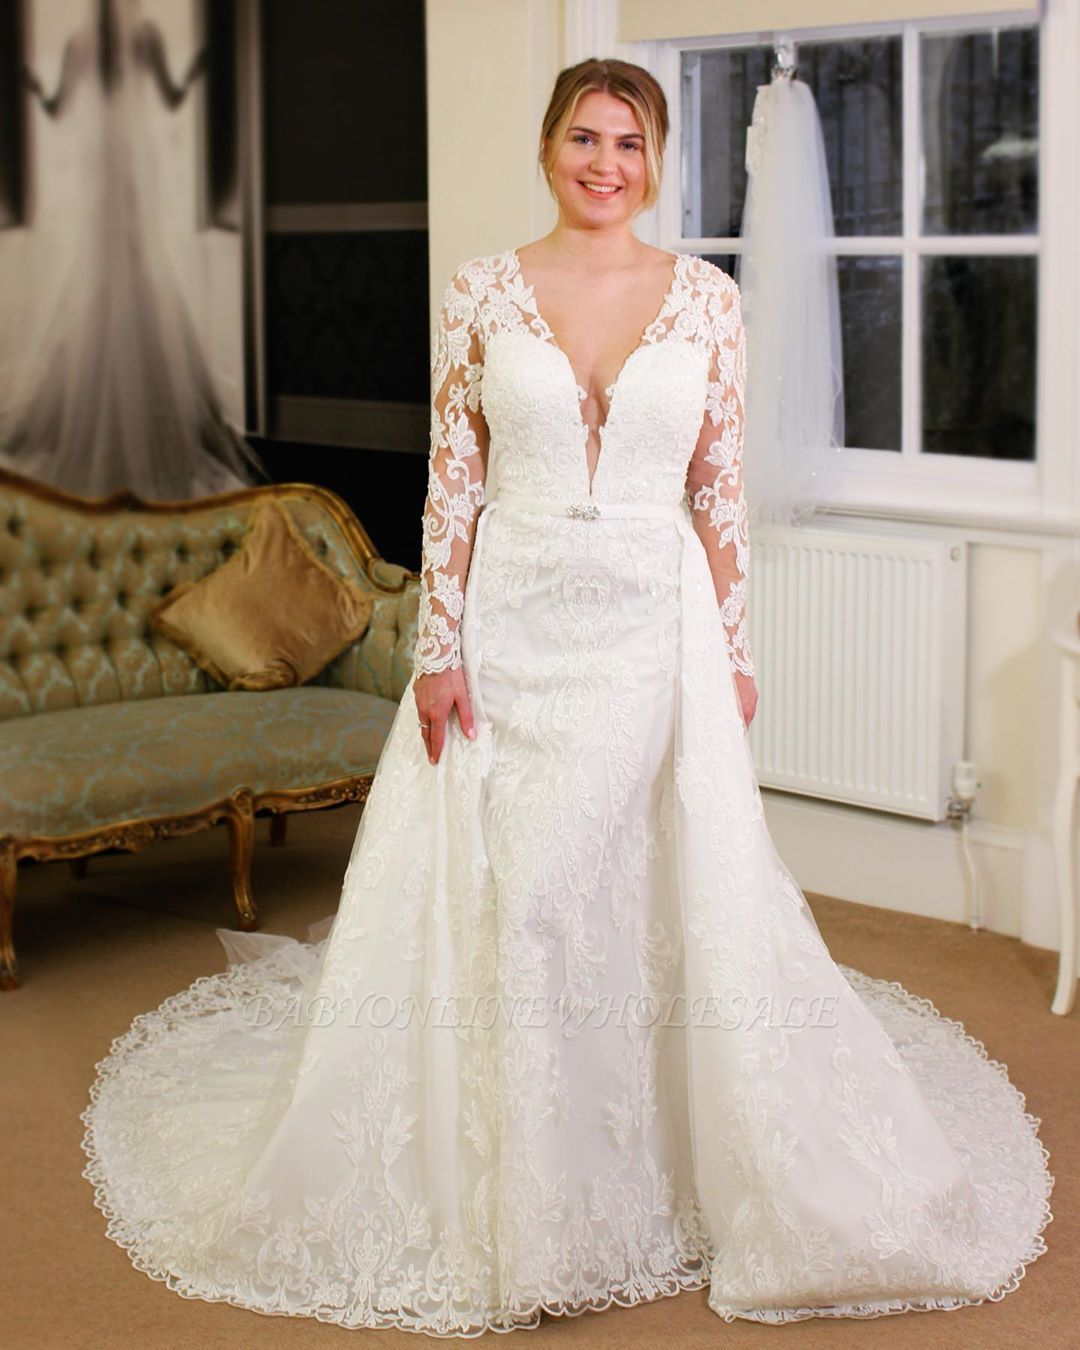 Luxury Long Sleeves Vneck Lace Royal Wedding Dress with